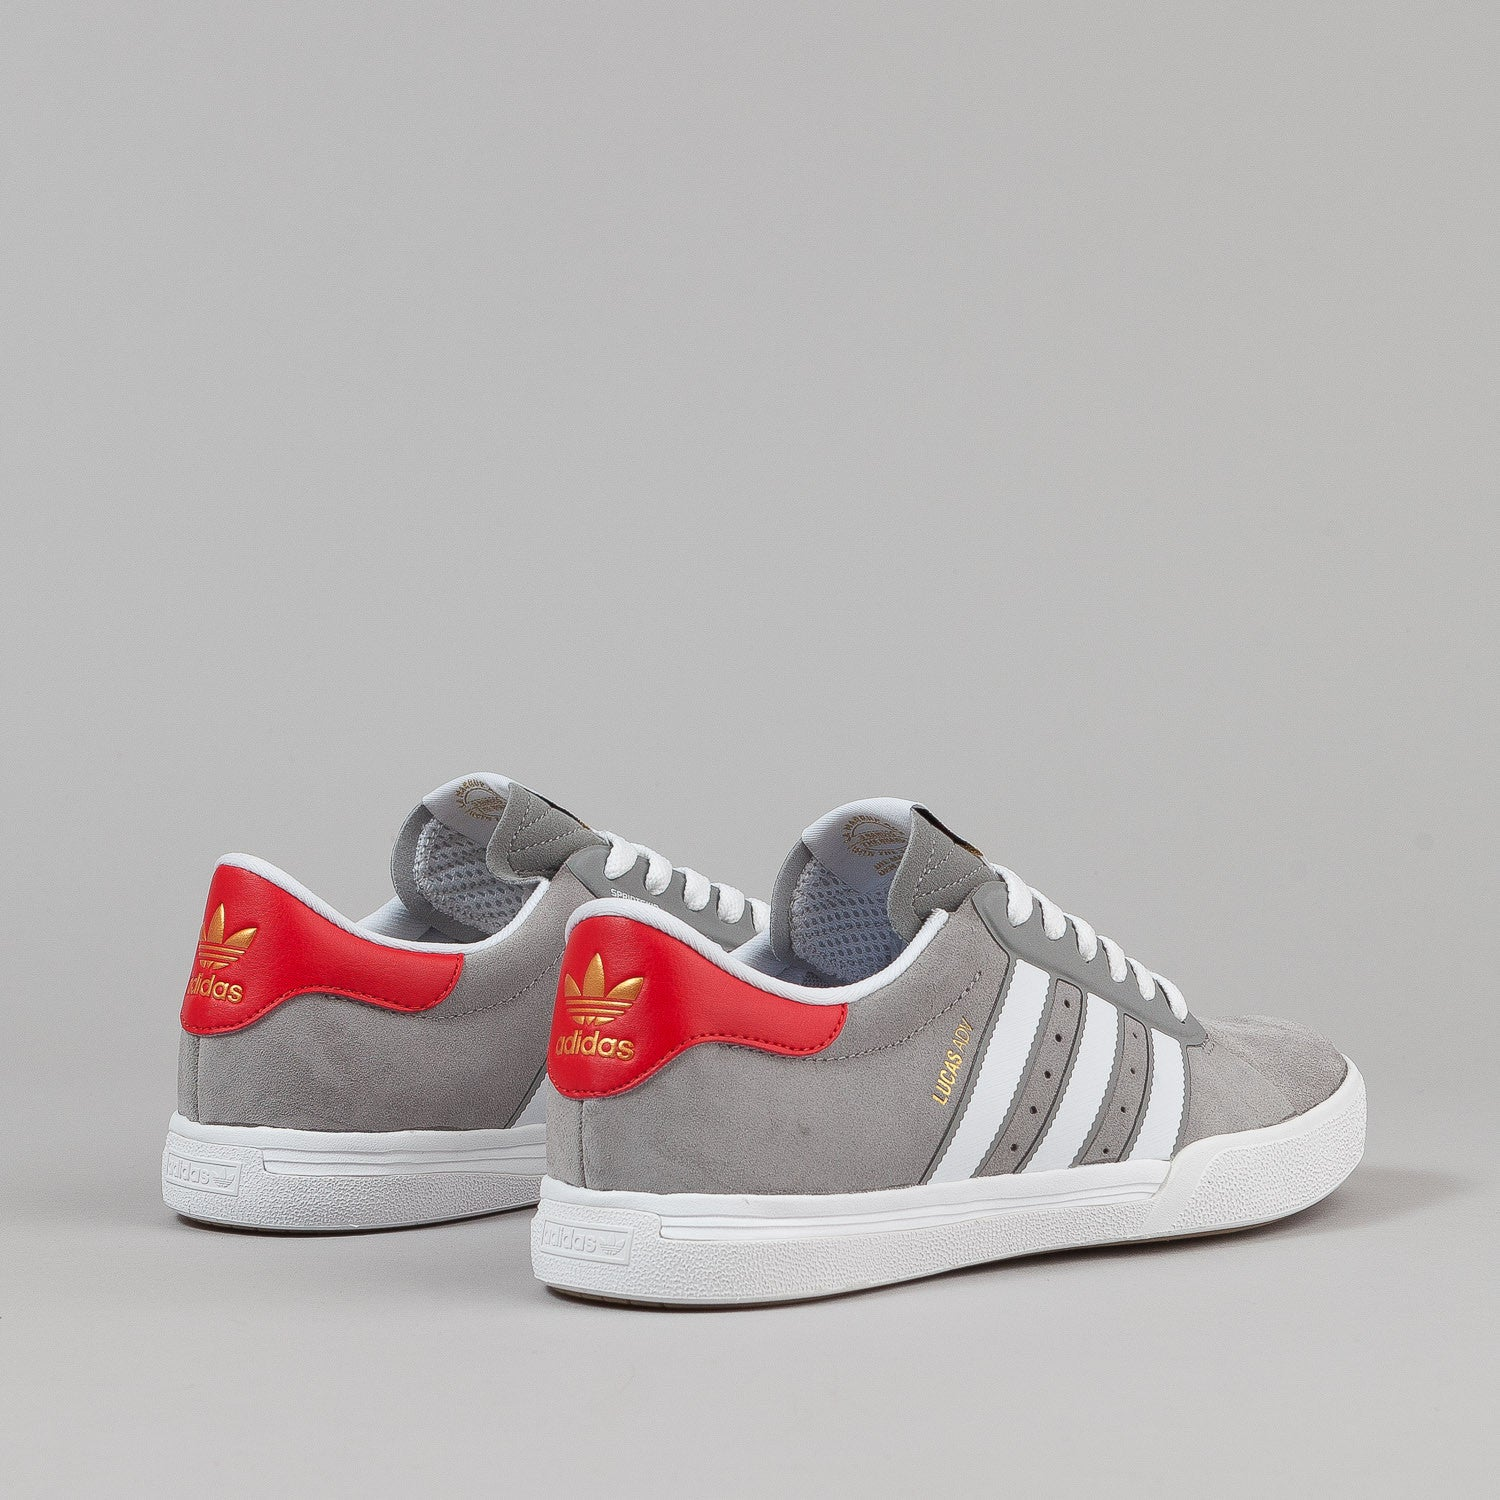 Adidas X Cliche Lucas ADV Shoes - Grey / White / Scarlet